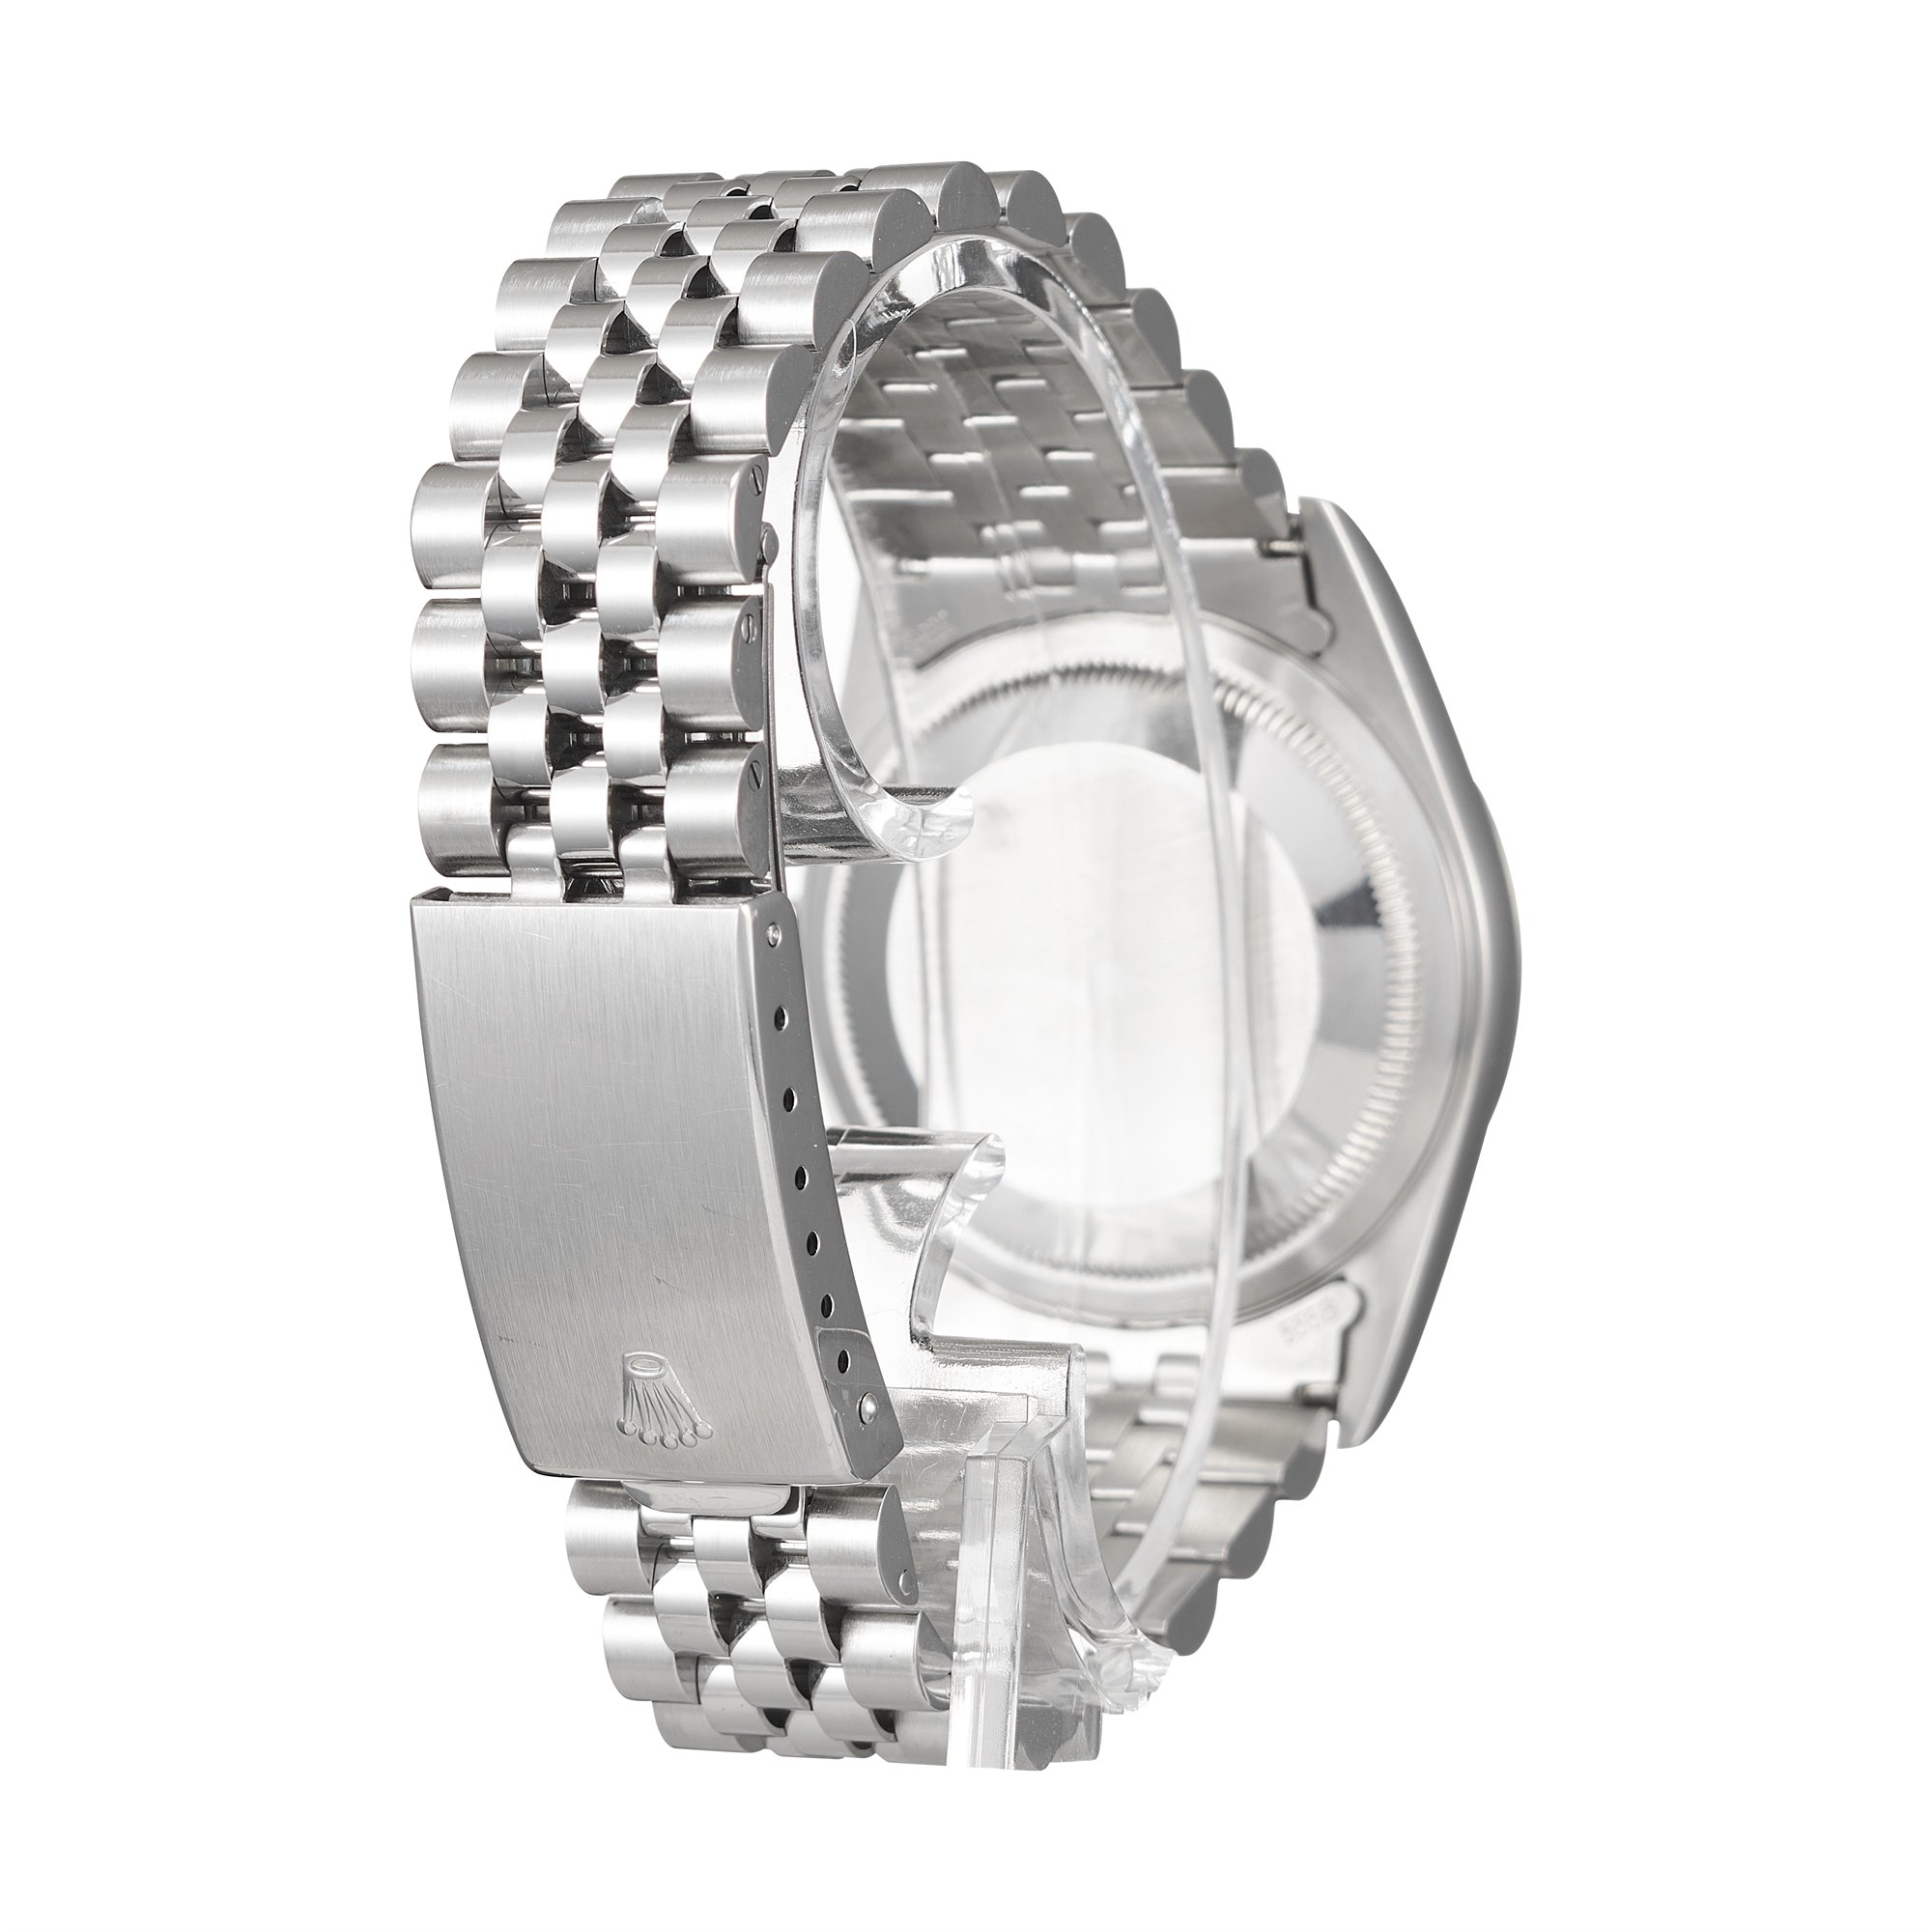 Rolex Datejust 36 Stainless Steel & White Gold 16234